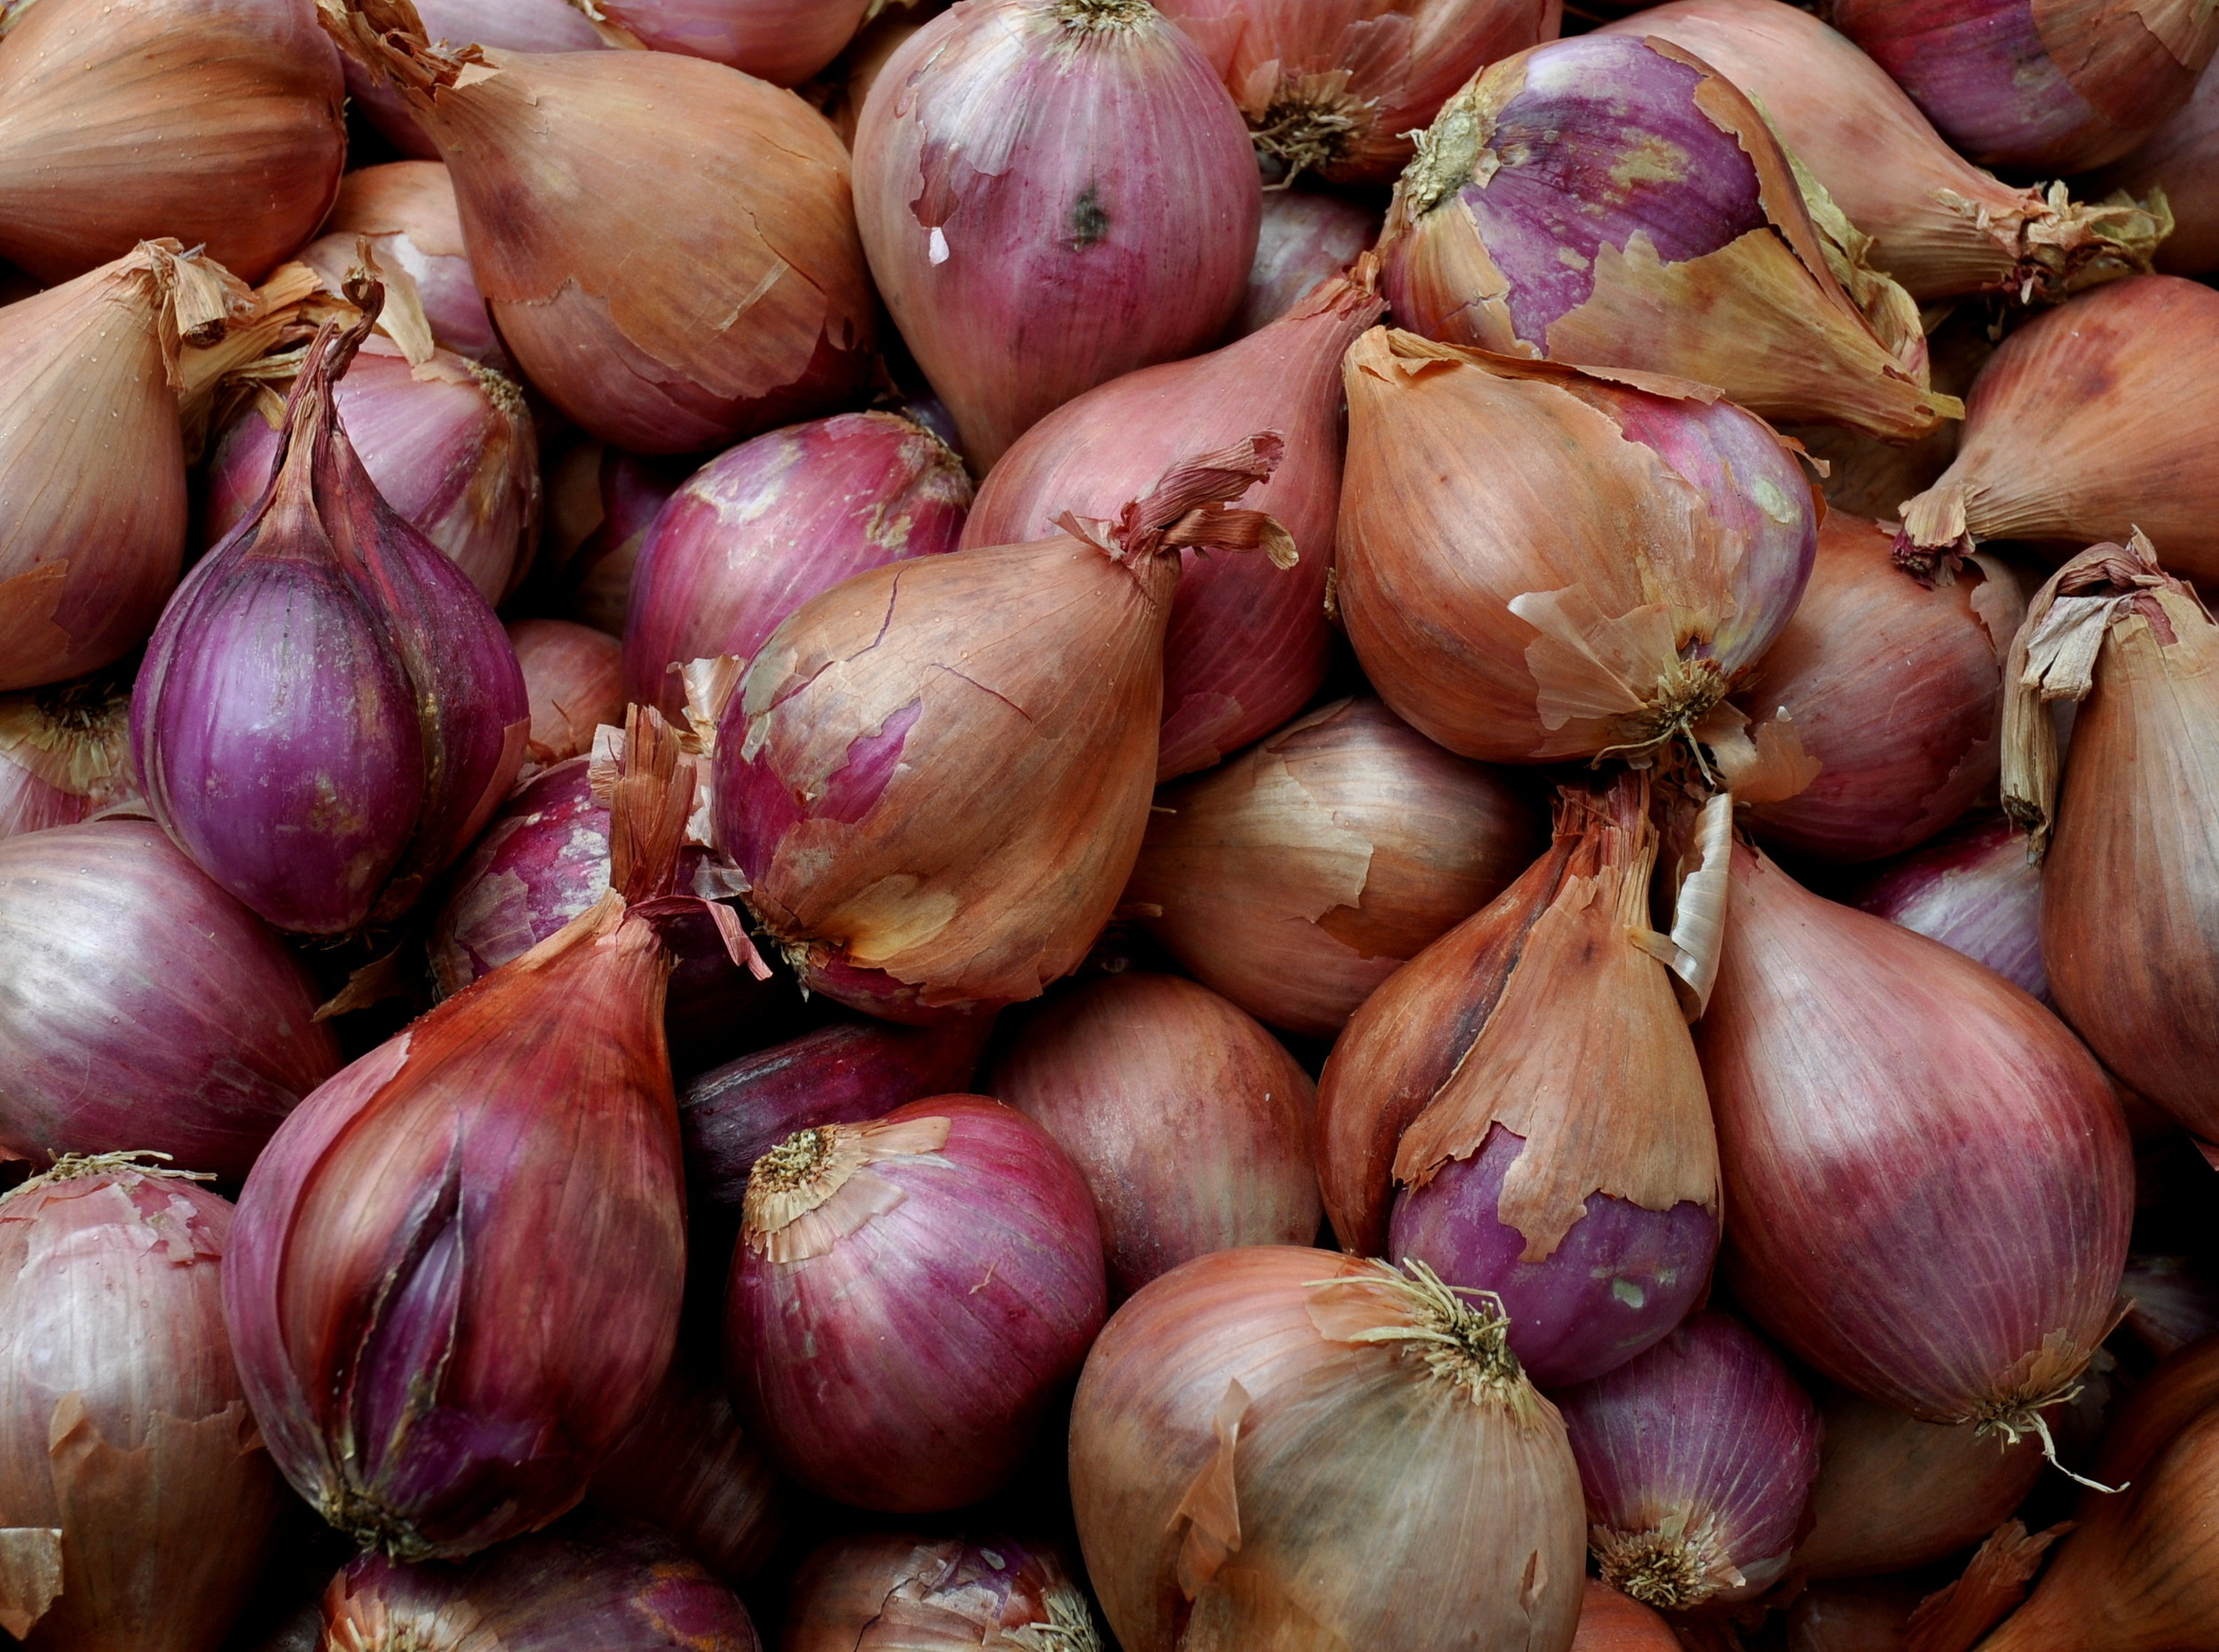 Shallots from Alvarez Organic Farms at Ballard Farmers Market. Copyright Zachary D. Lyons.